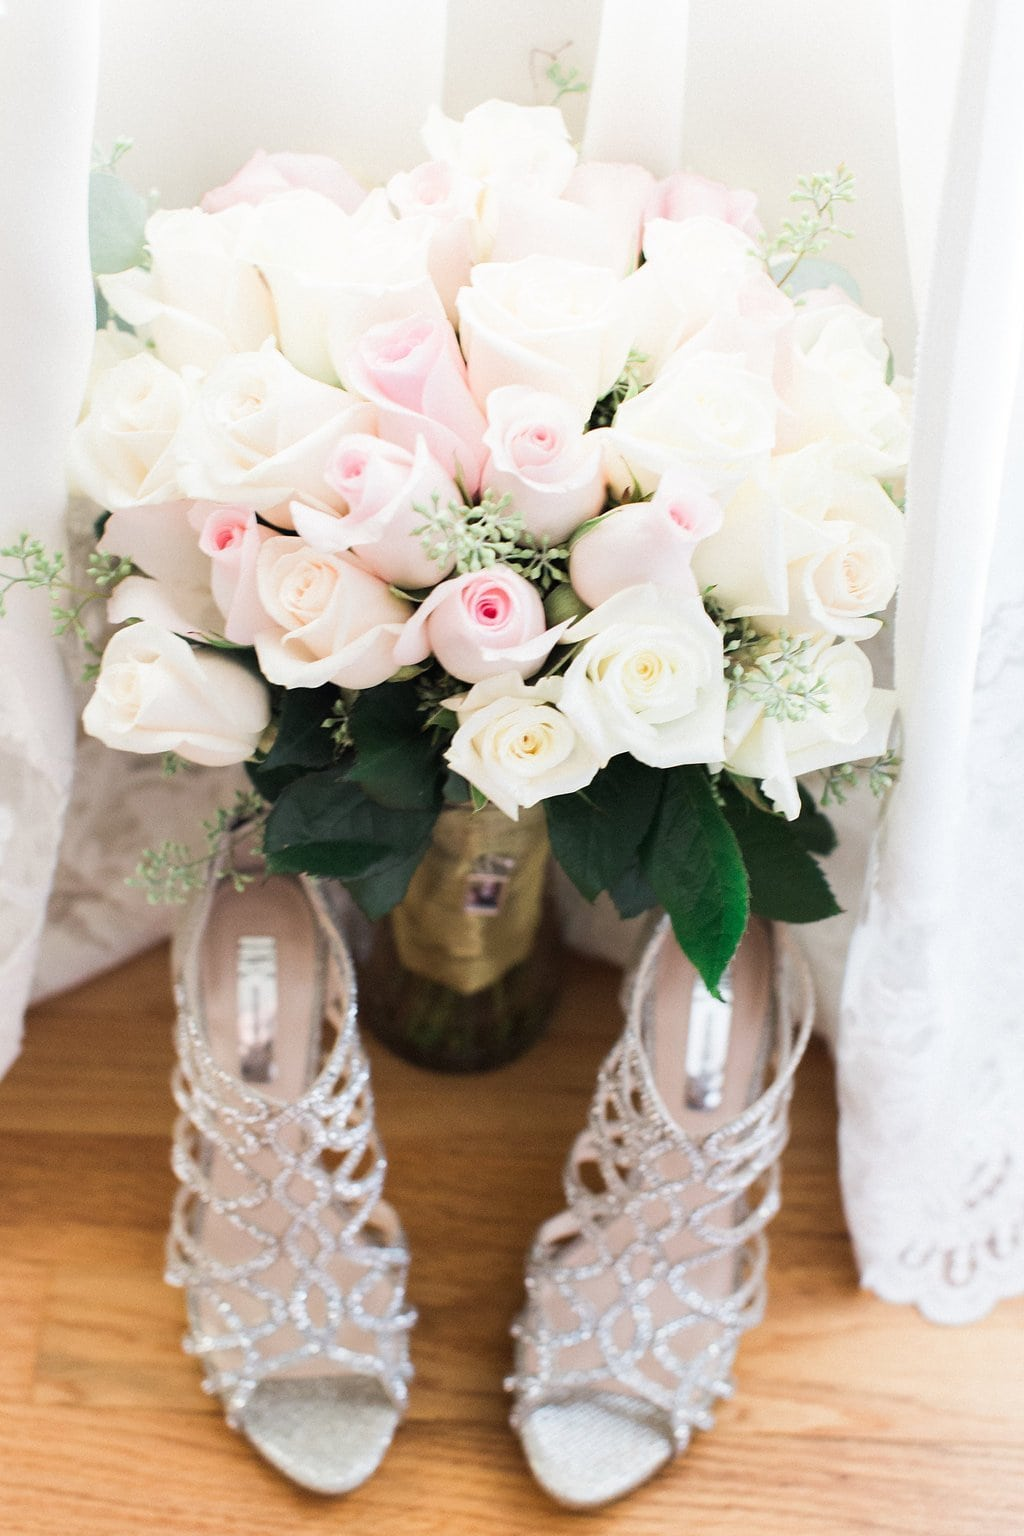 Bride's pink and white bouquet with shoes and wedding dress